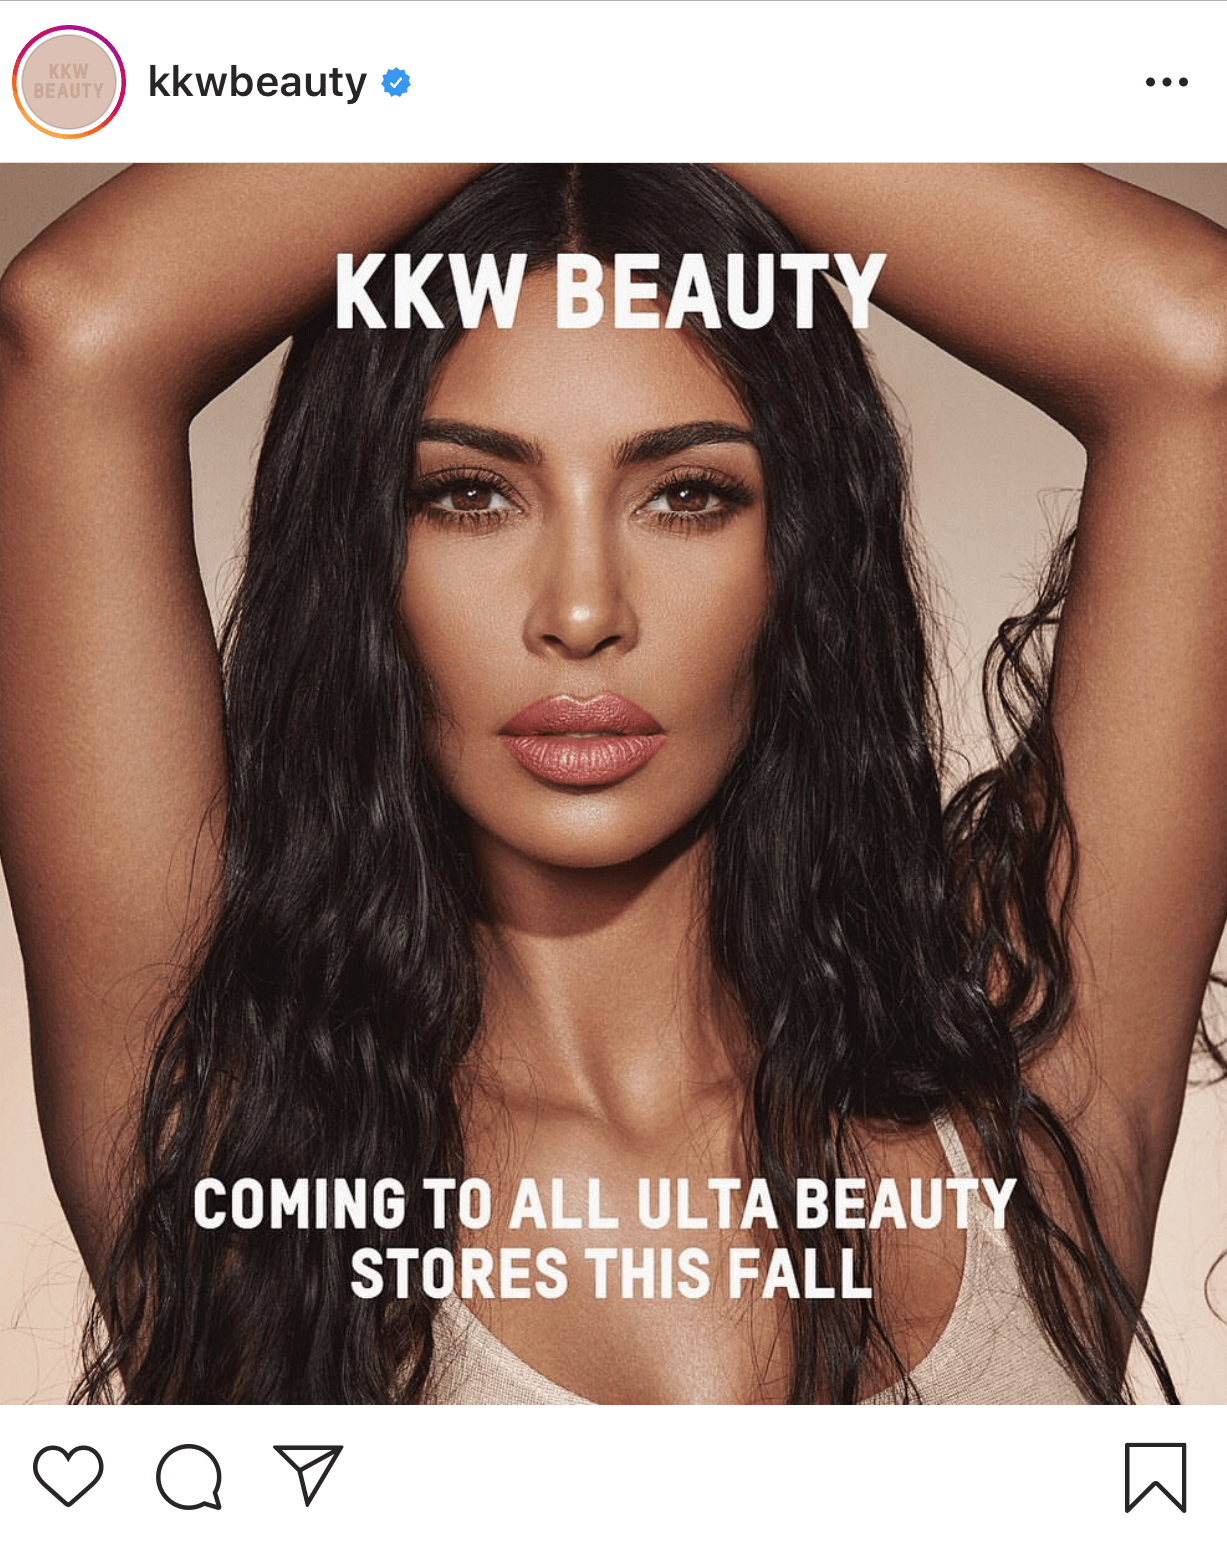 KKW beauty instagram account